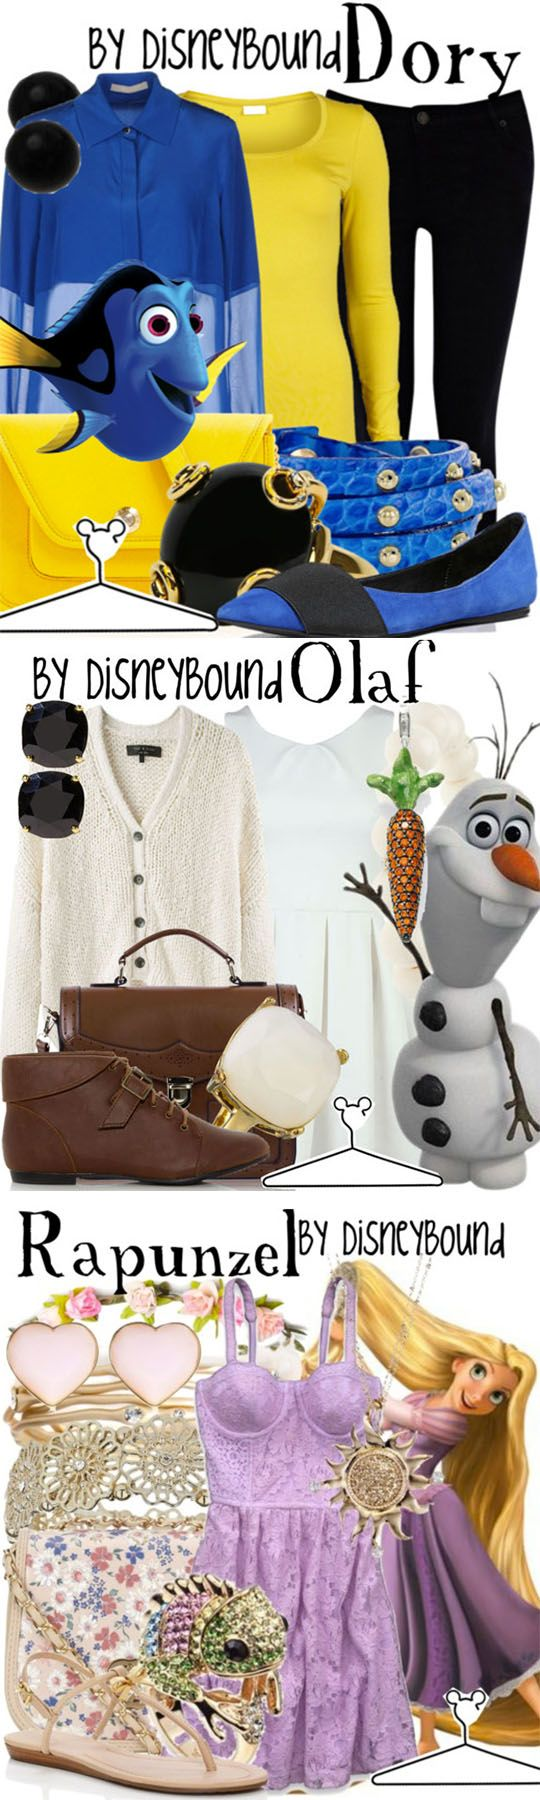 disneystyle:  Quiz:Which Character Should You DisneyBound As Next? | Disney Style